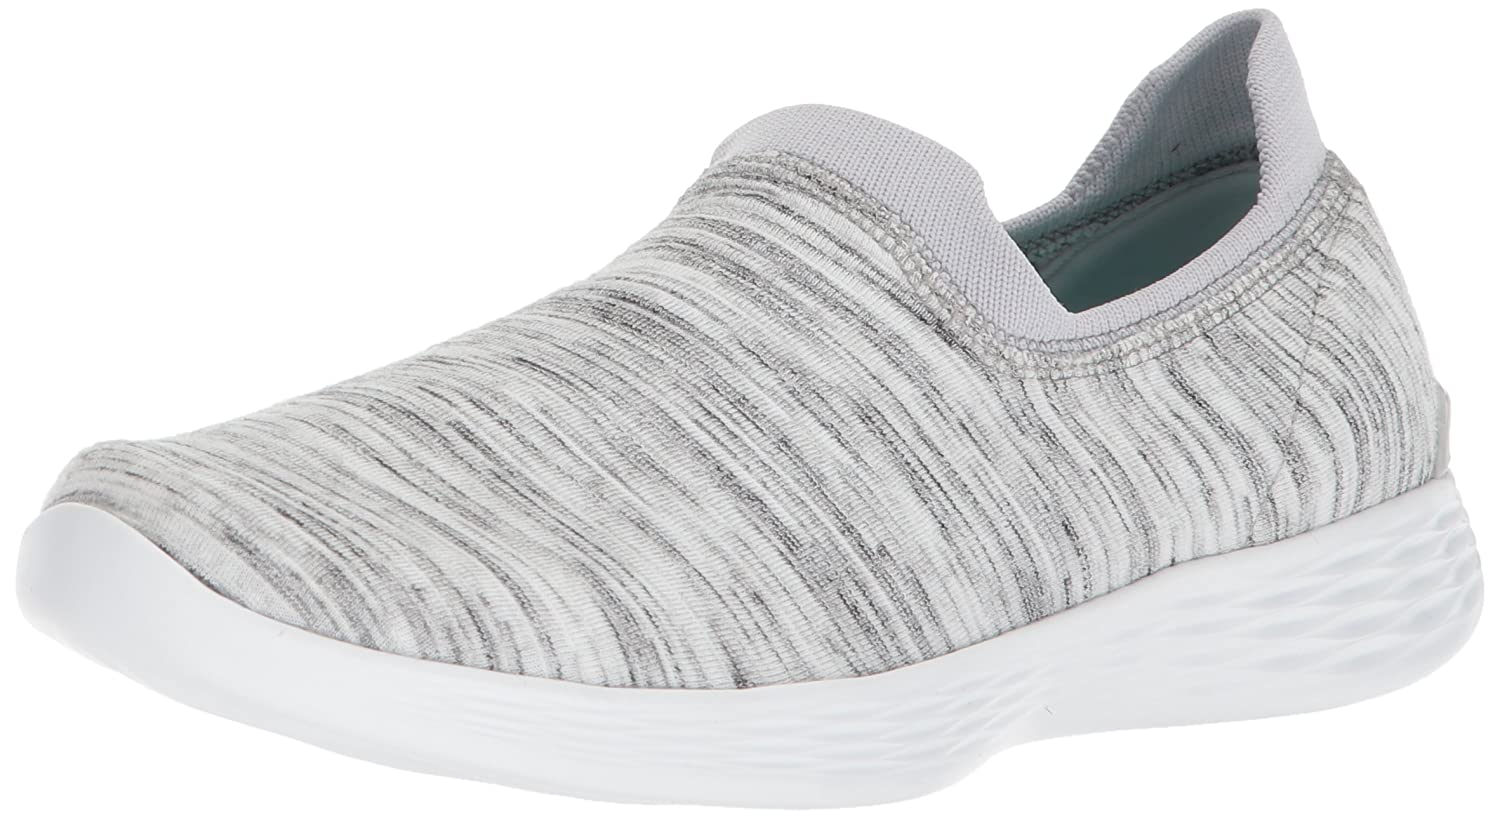 Skechers Women's You Zen Wide Sneaker B071WY94CR 6 W US|White/Gray